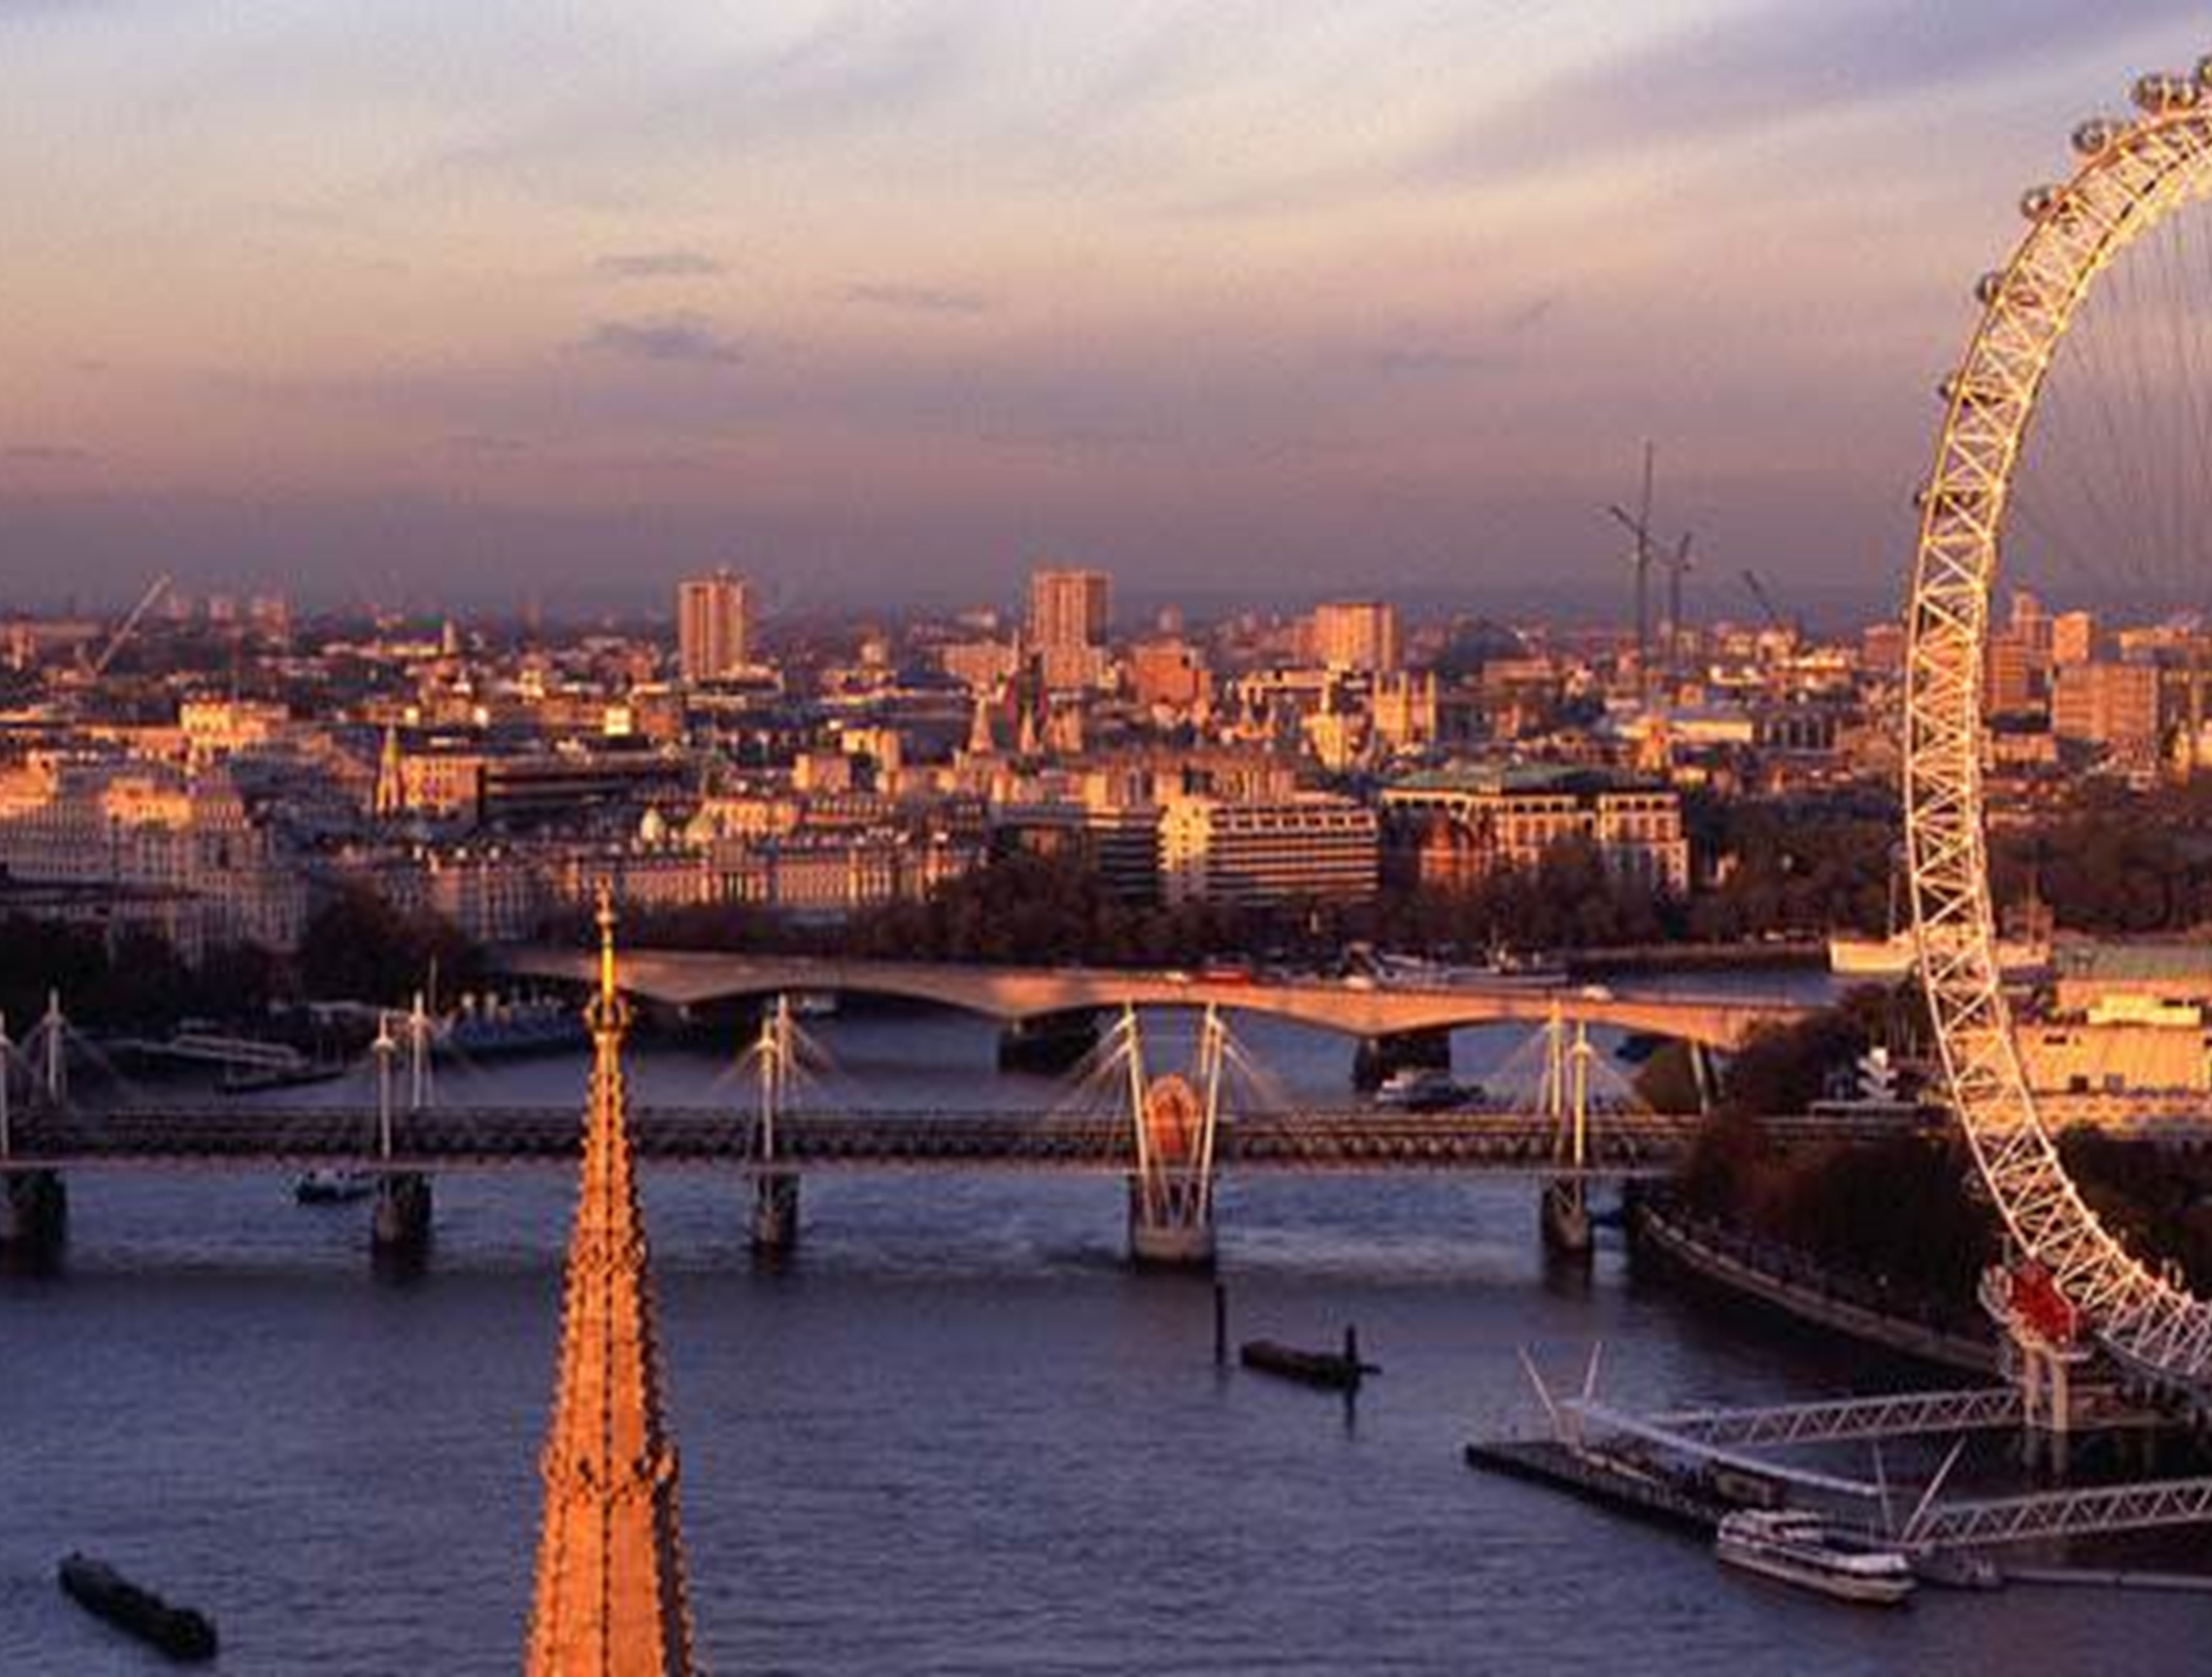 London Eye and skyline at sunset